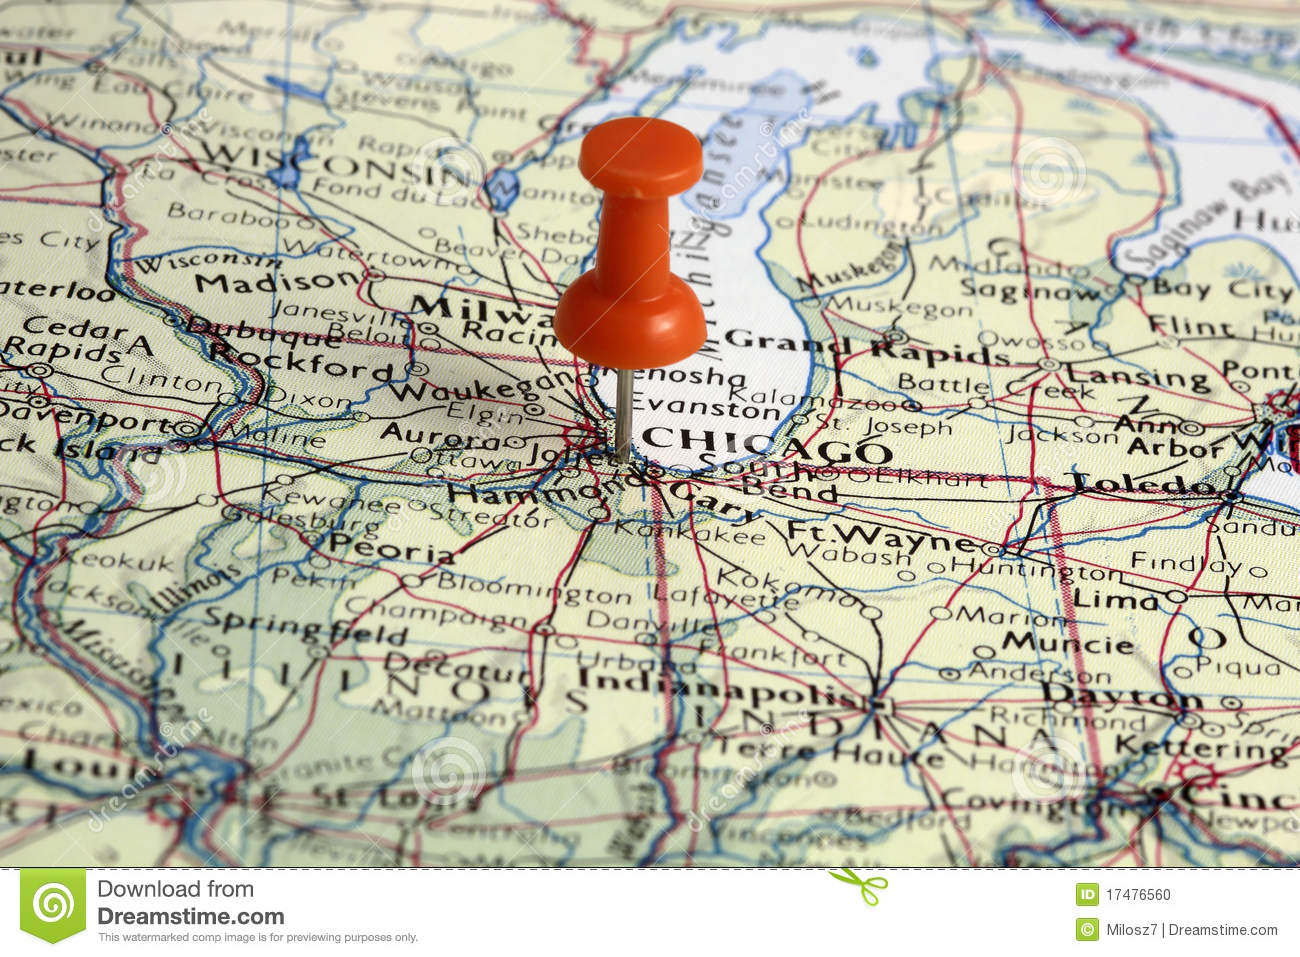 Pin Location Map Free Vector Graphic On Pixabay: Pin On Chicago Location Stock Photo